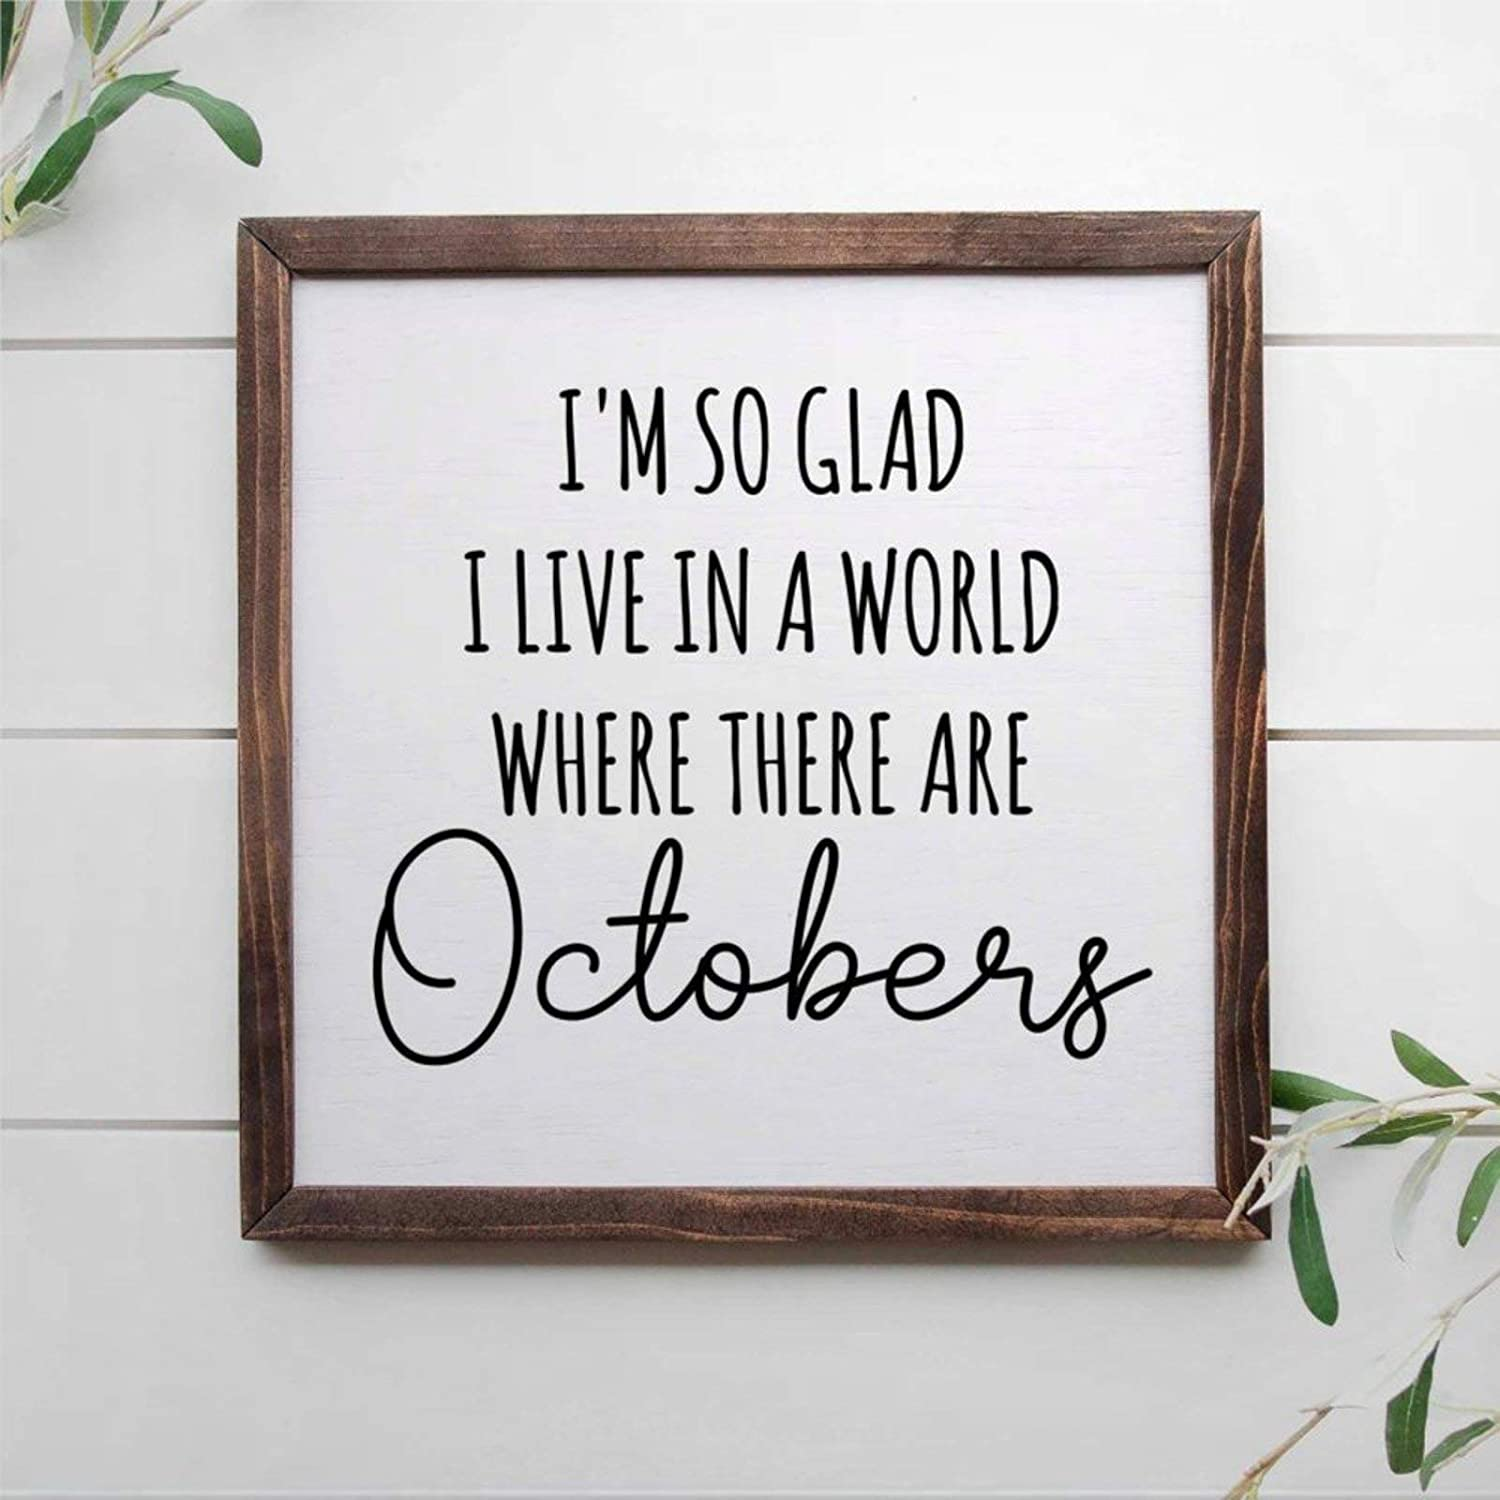 DONL9BAUER I'm So Glad I Live in A World Where There are Octobers, 12x12 Framed Wooden Sign, Fall Decor, Halloween Sign Farmhouse Wall Hanging Wall Art for Living Room Kitchen Home Decor